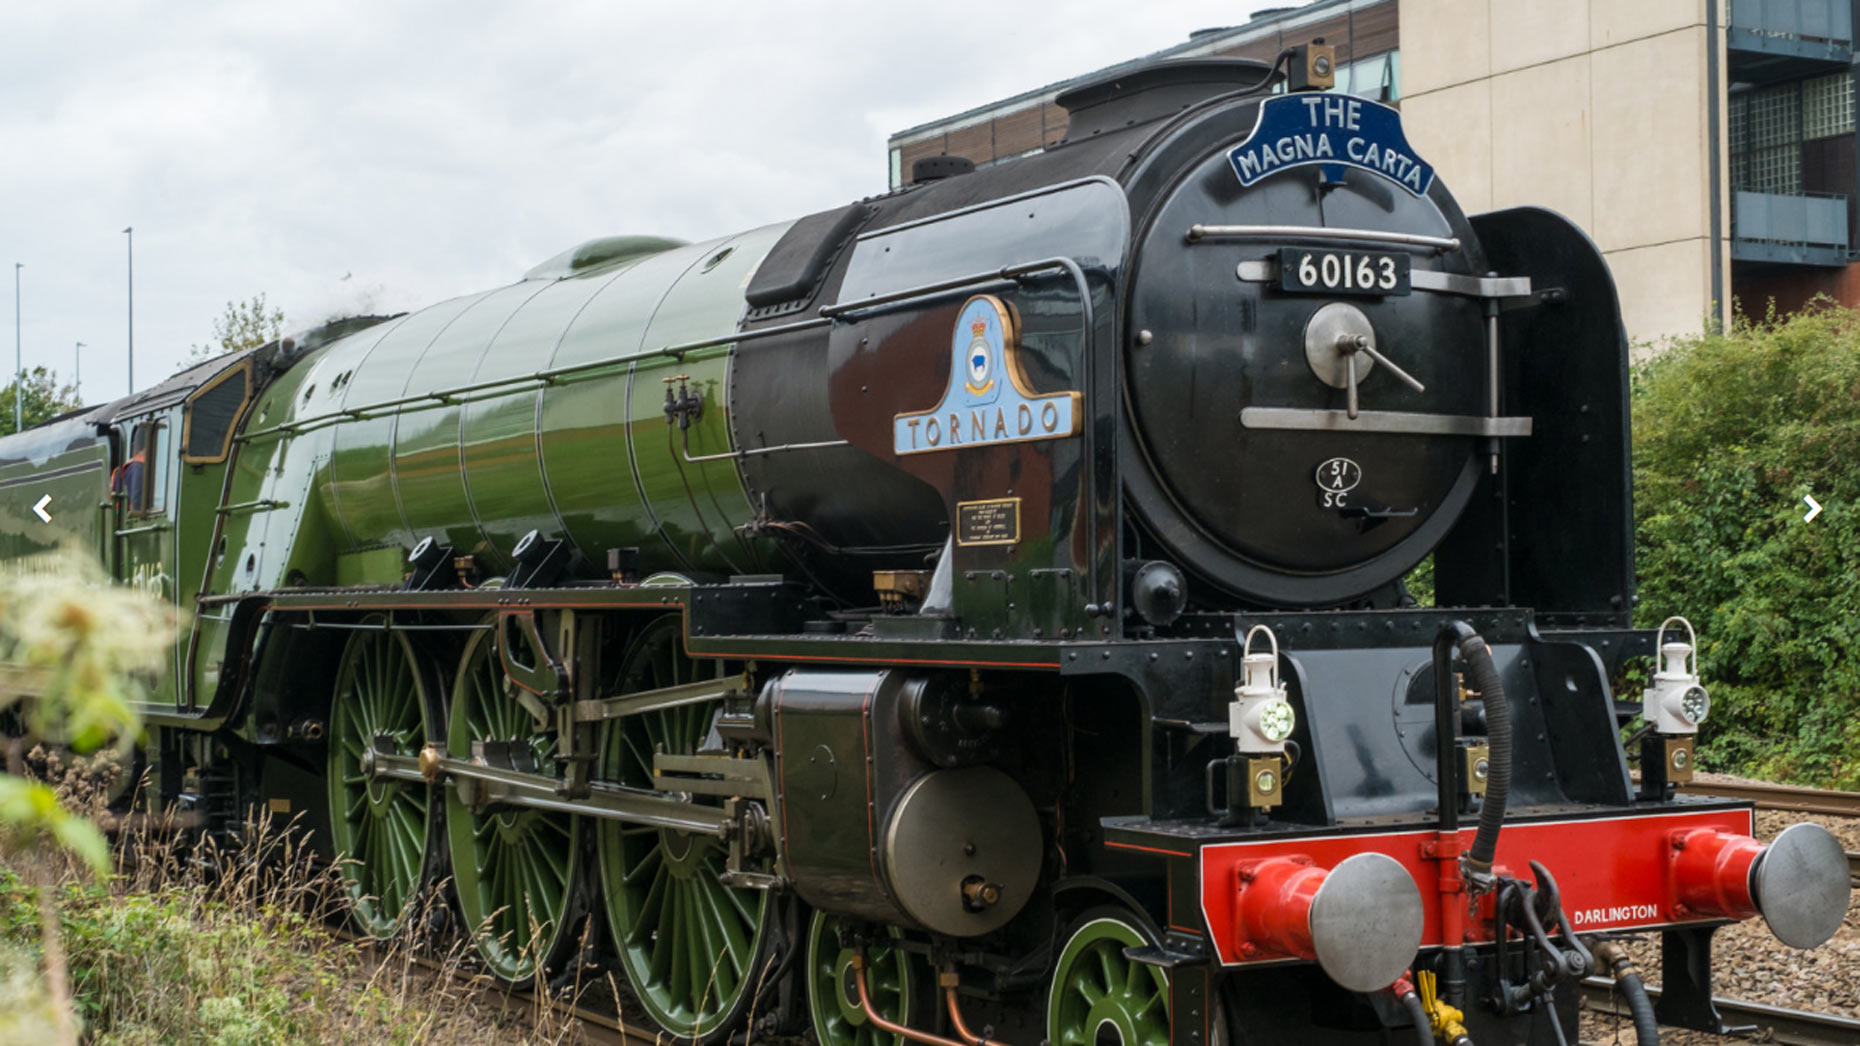 Video Tornado Steam Locomotive And Magna Carta Train Train Pass Through Lincoln